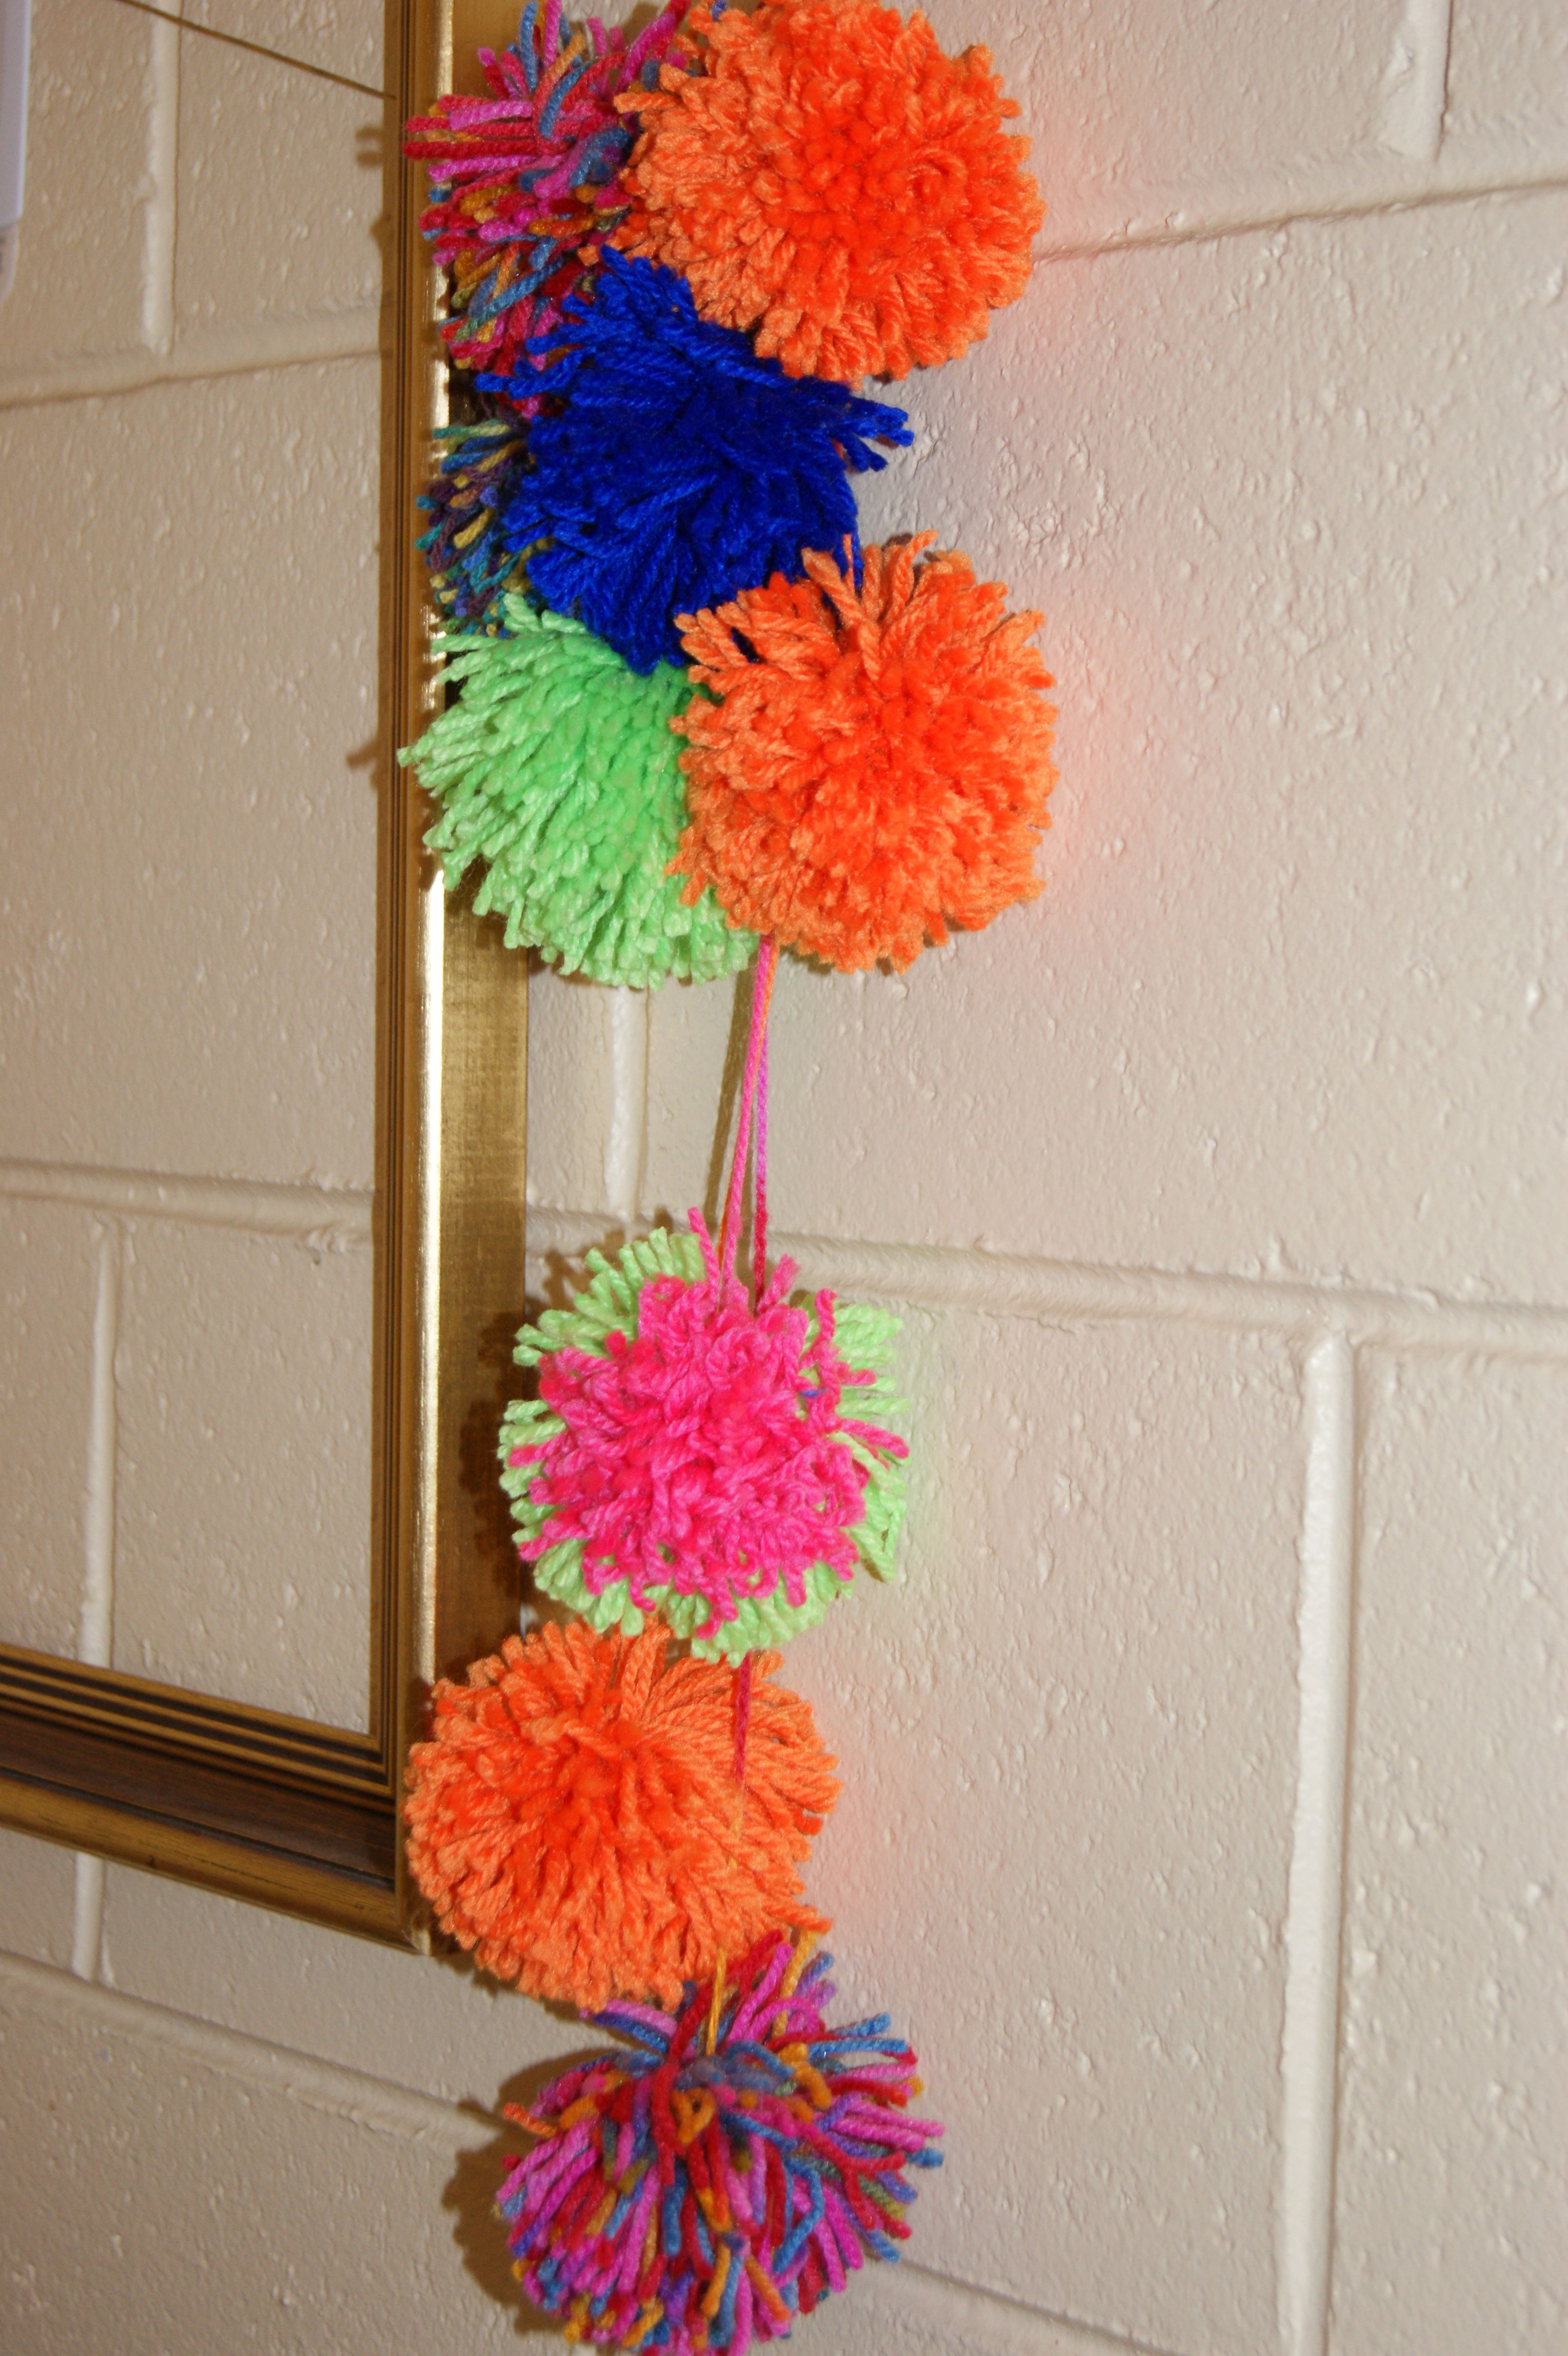 POMPOMS ARE EASY A LOT OF FUN TO MAKE KIDS CAN MAKE THEM SO CAN ADULTS. Things To Decorate Home  universalcouncil info